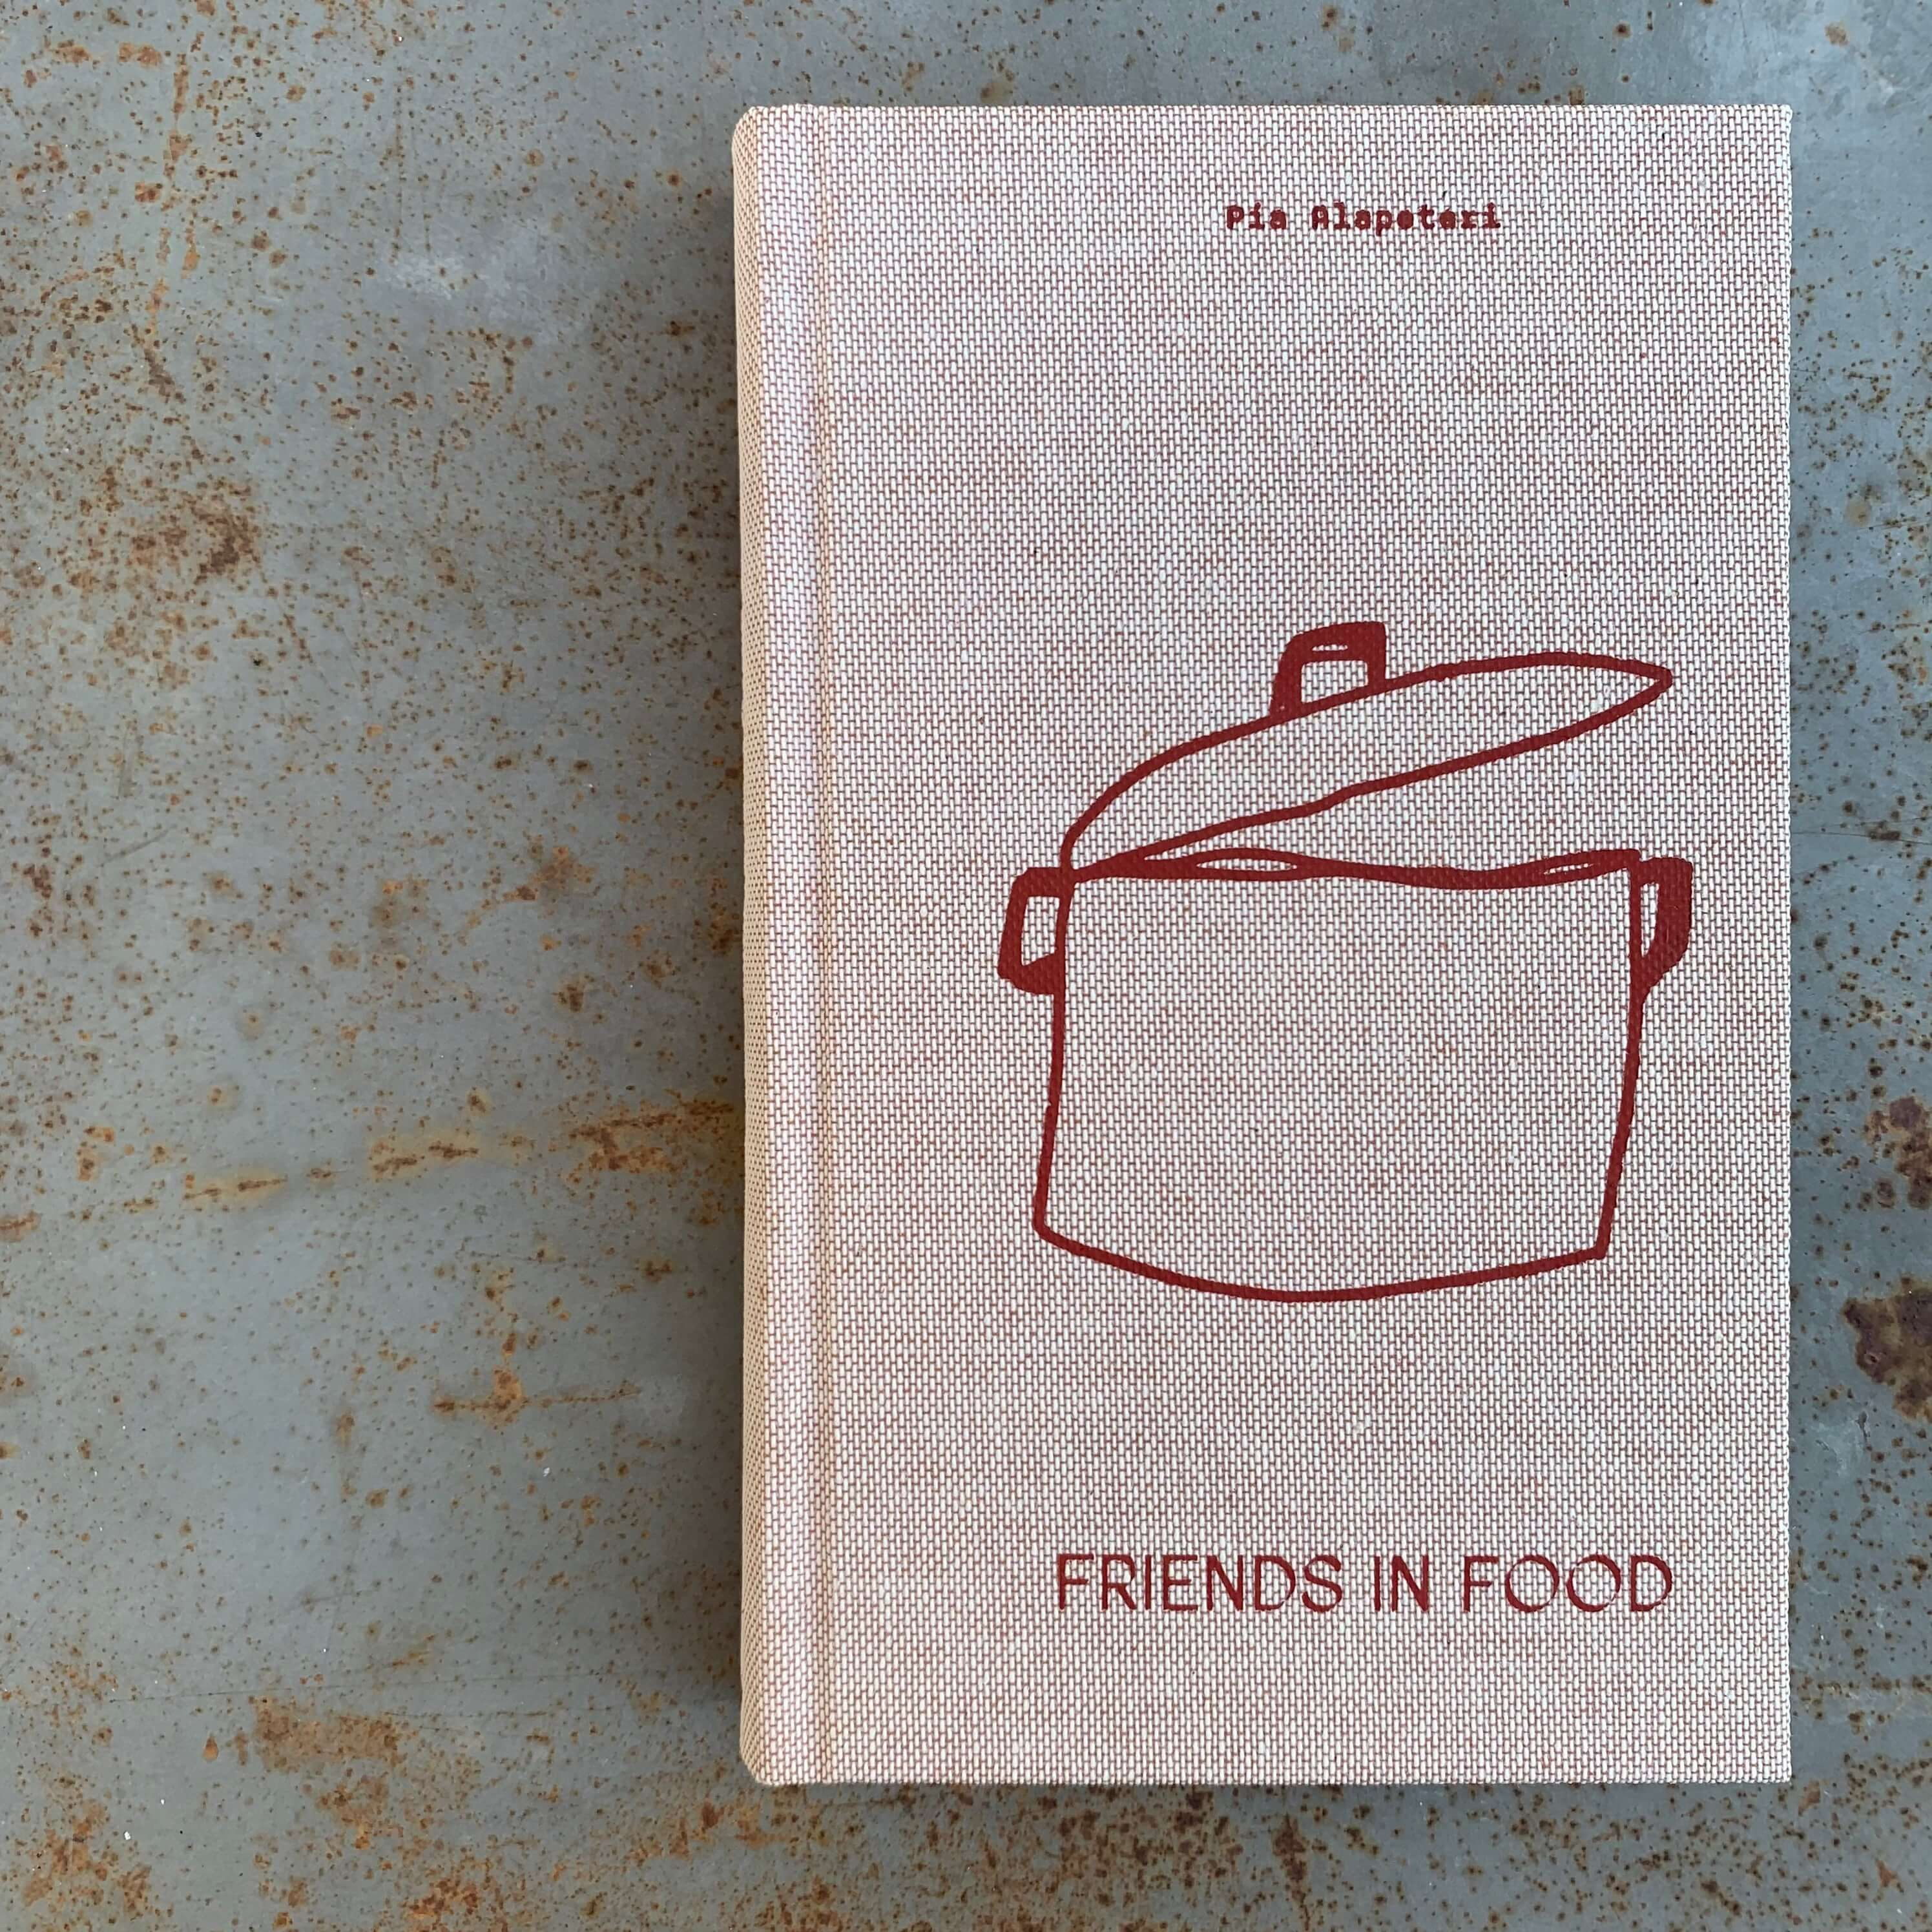 Friends in Food by Pia Alapeteri